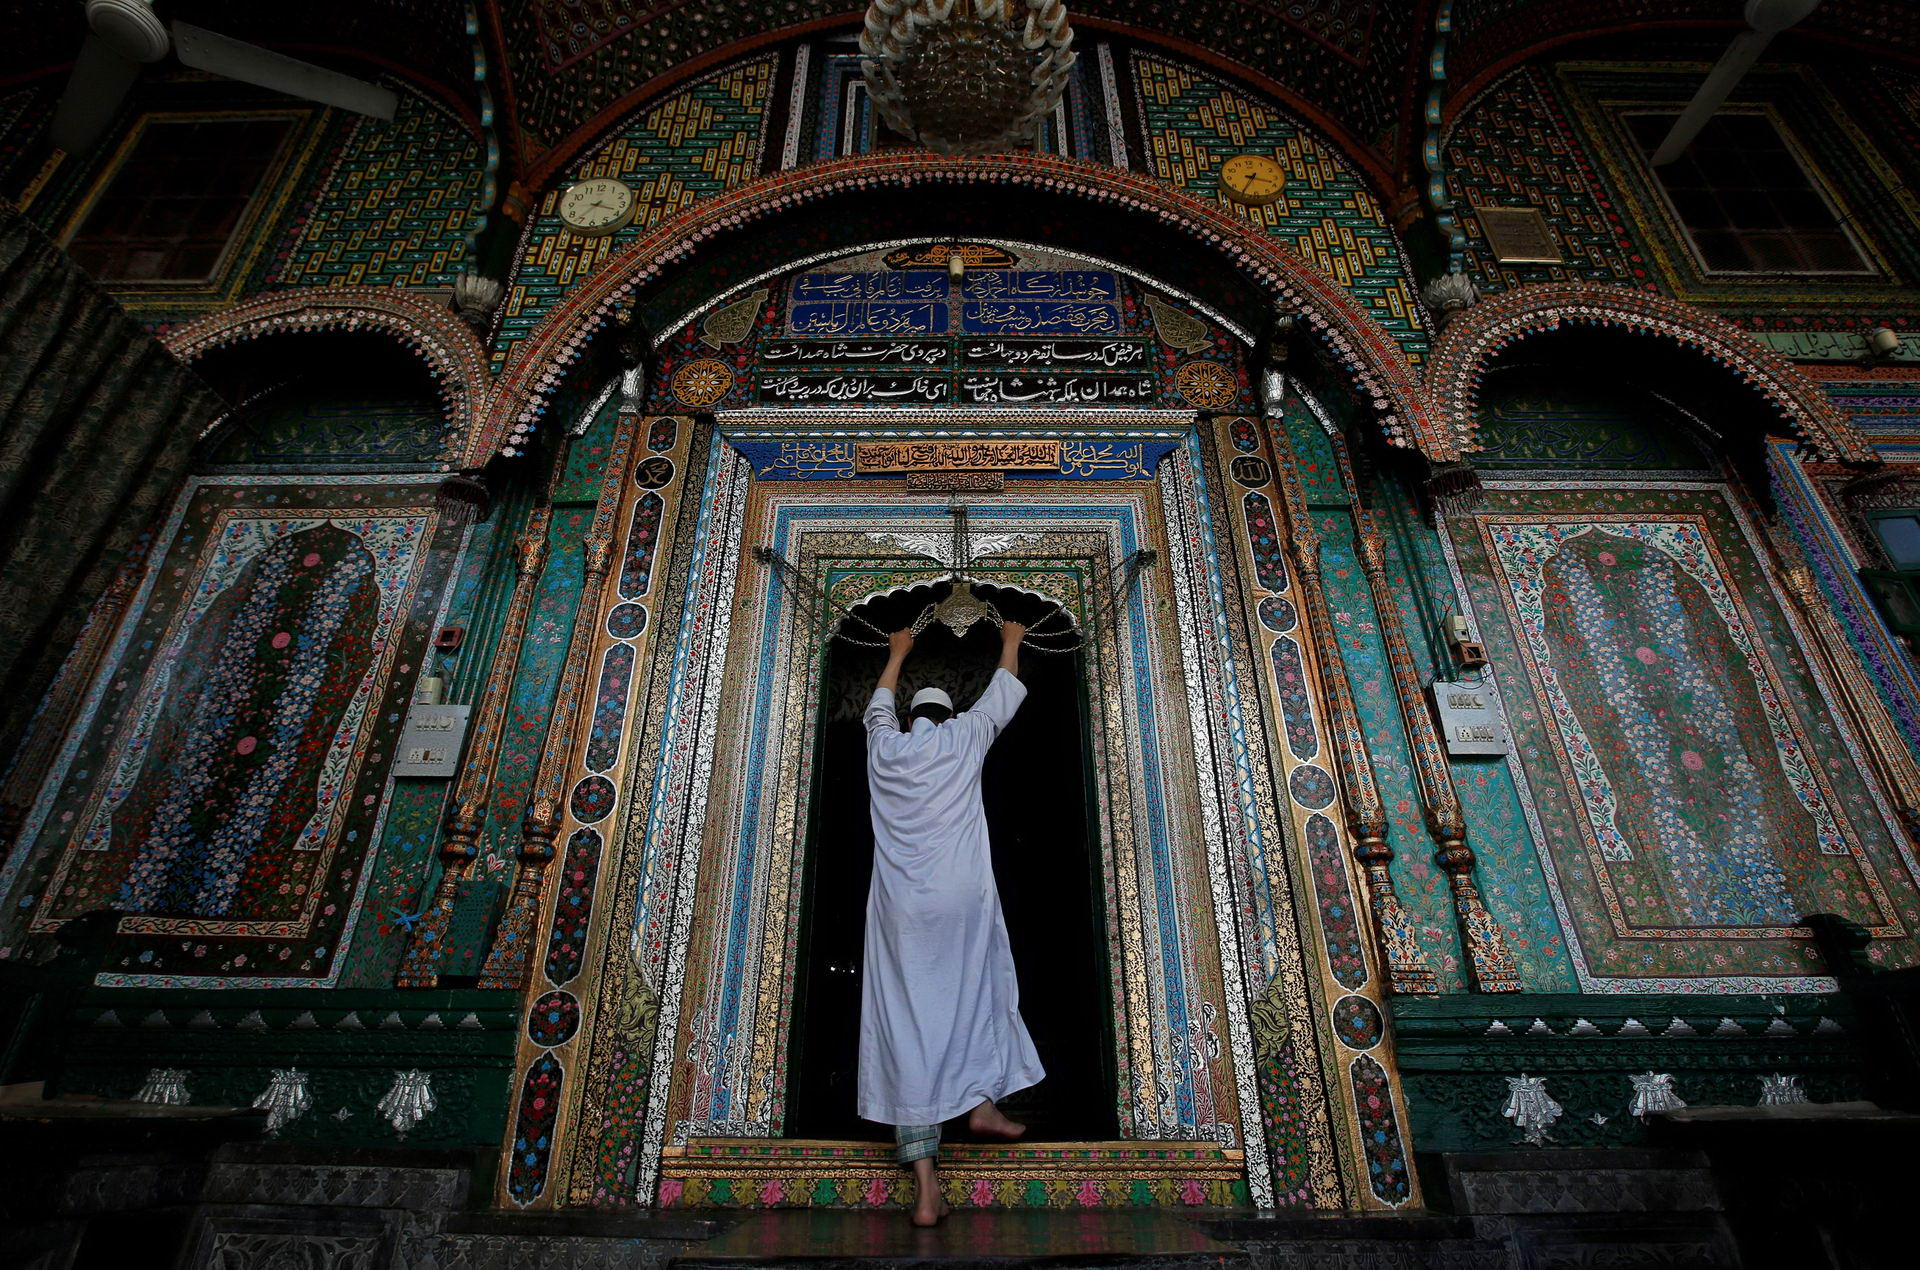 A Muslim man touches an ornament, engraved with verses from the Koran, tied to a chain at shrine of Mir Syed Ali Hamdani during holy month of Ramadan in Srinagar